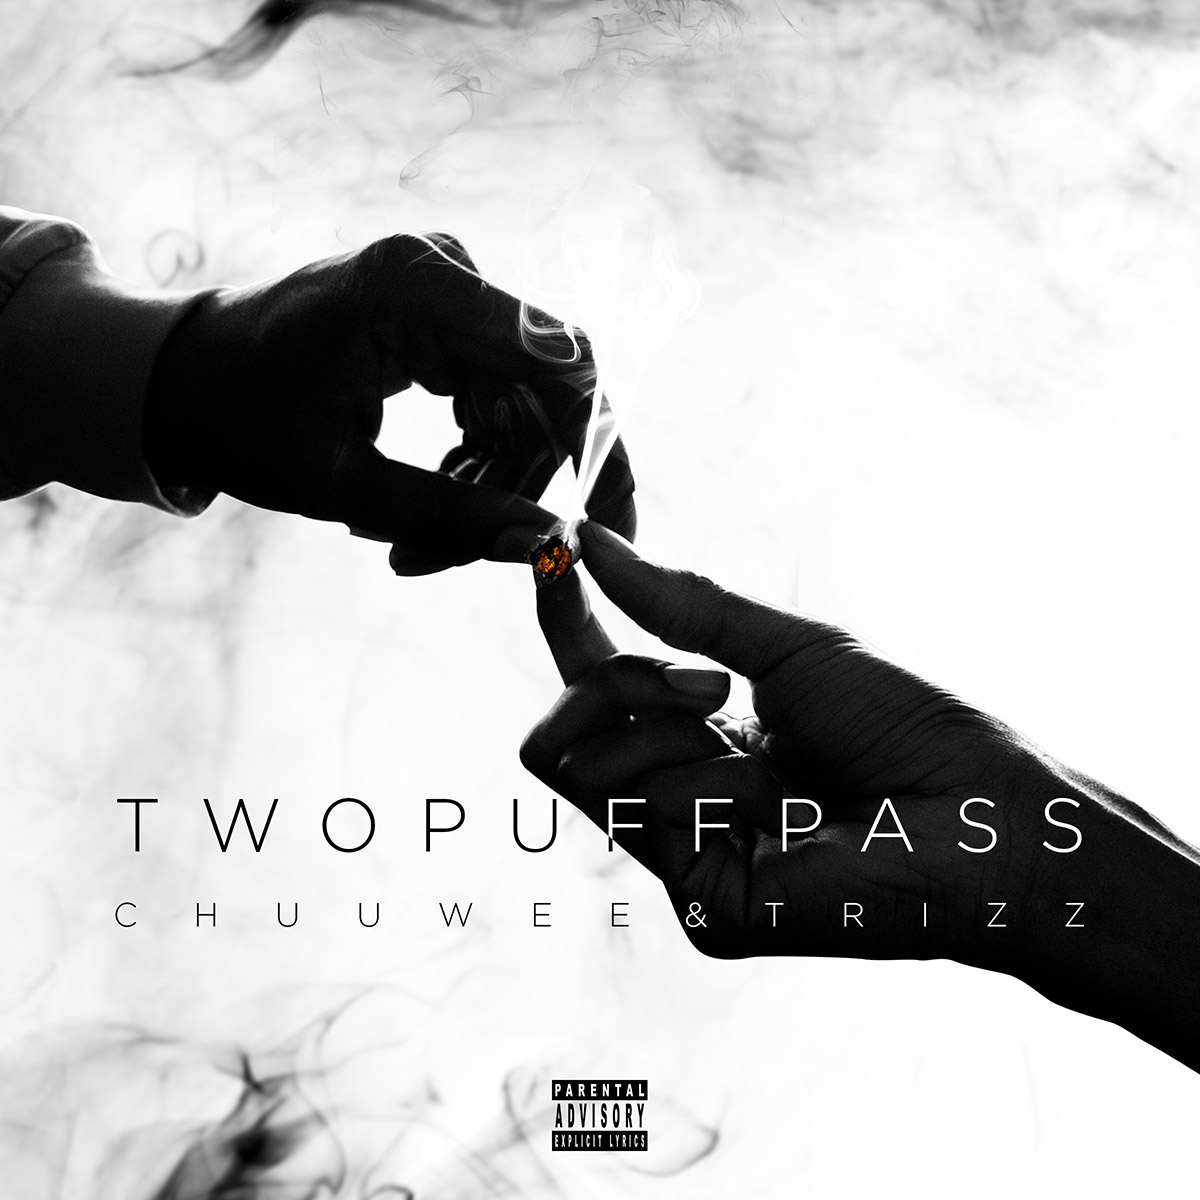 Chuuwee & Trizz - Two Puff Pass